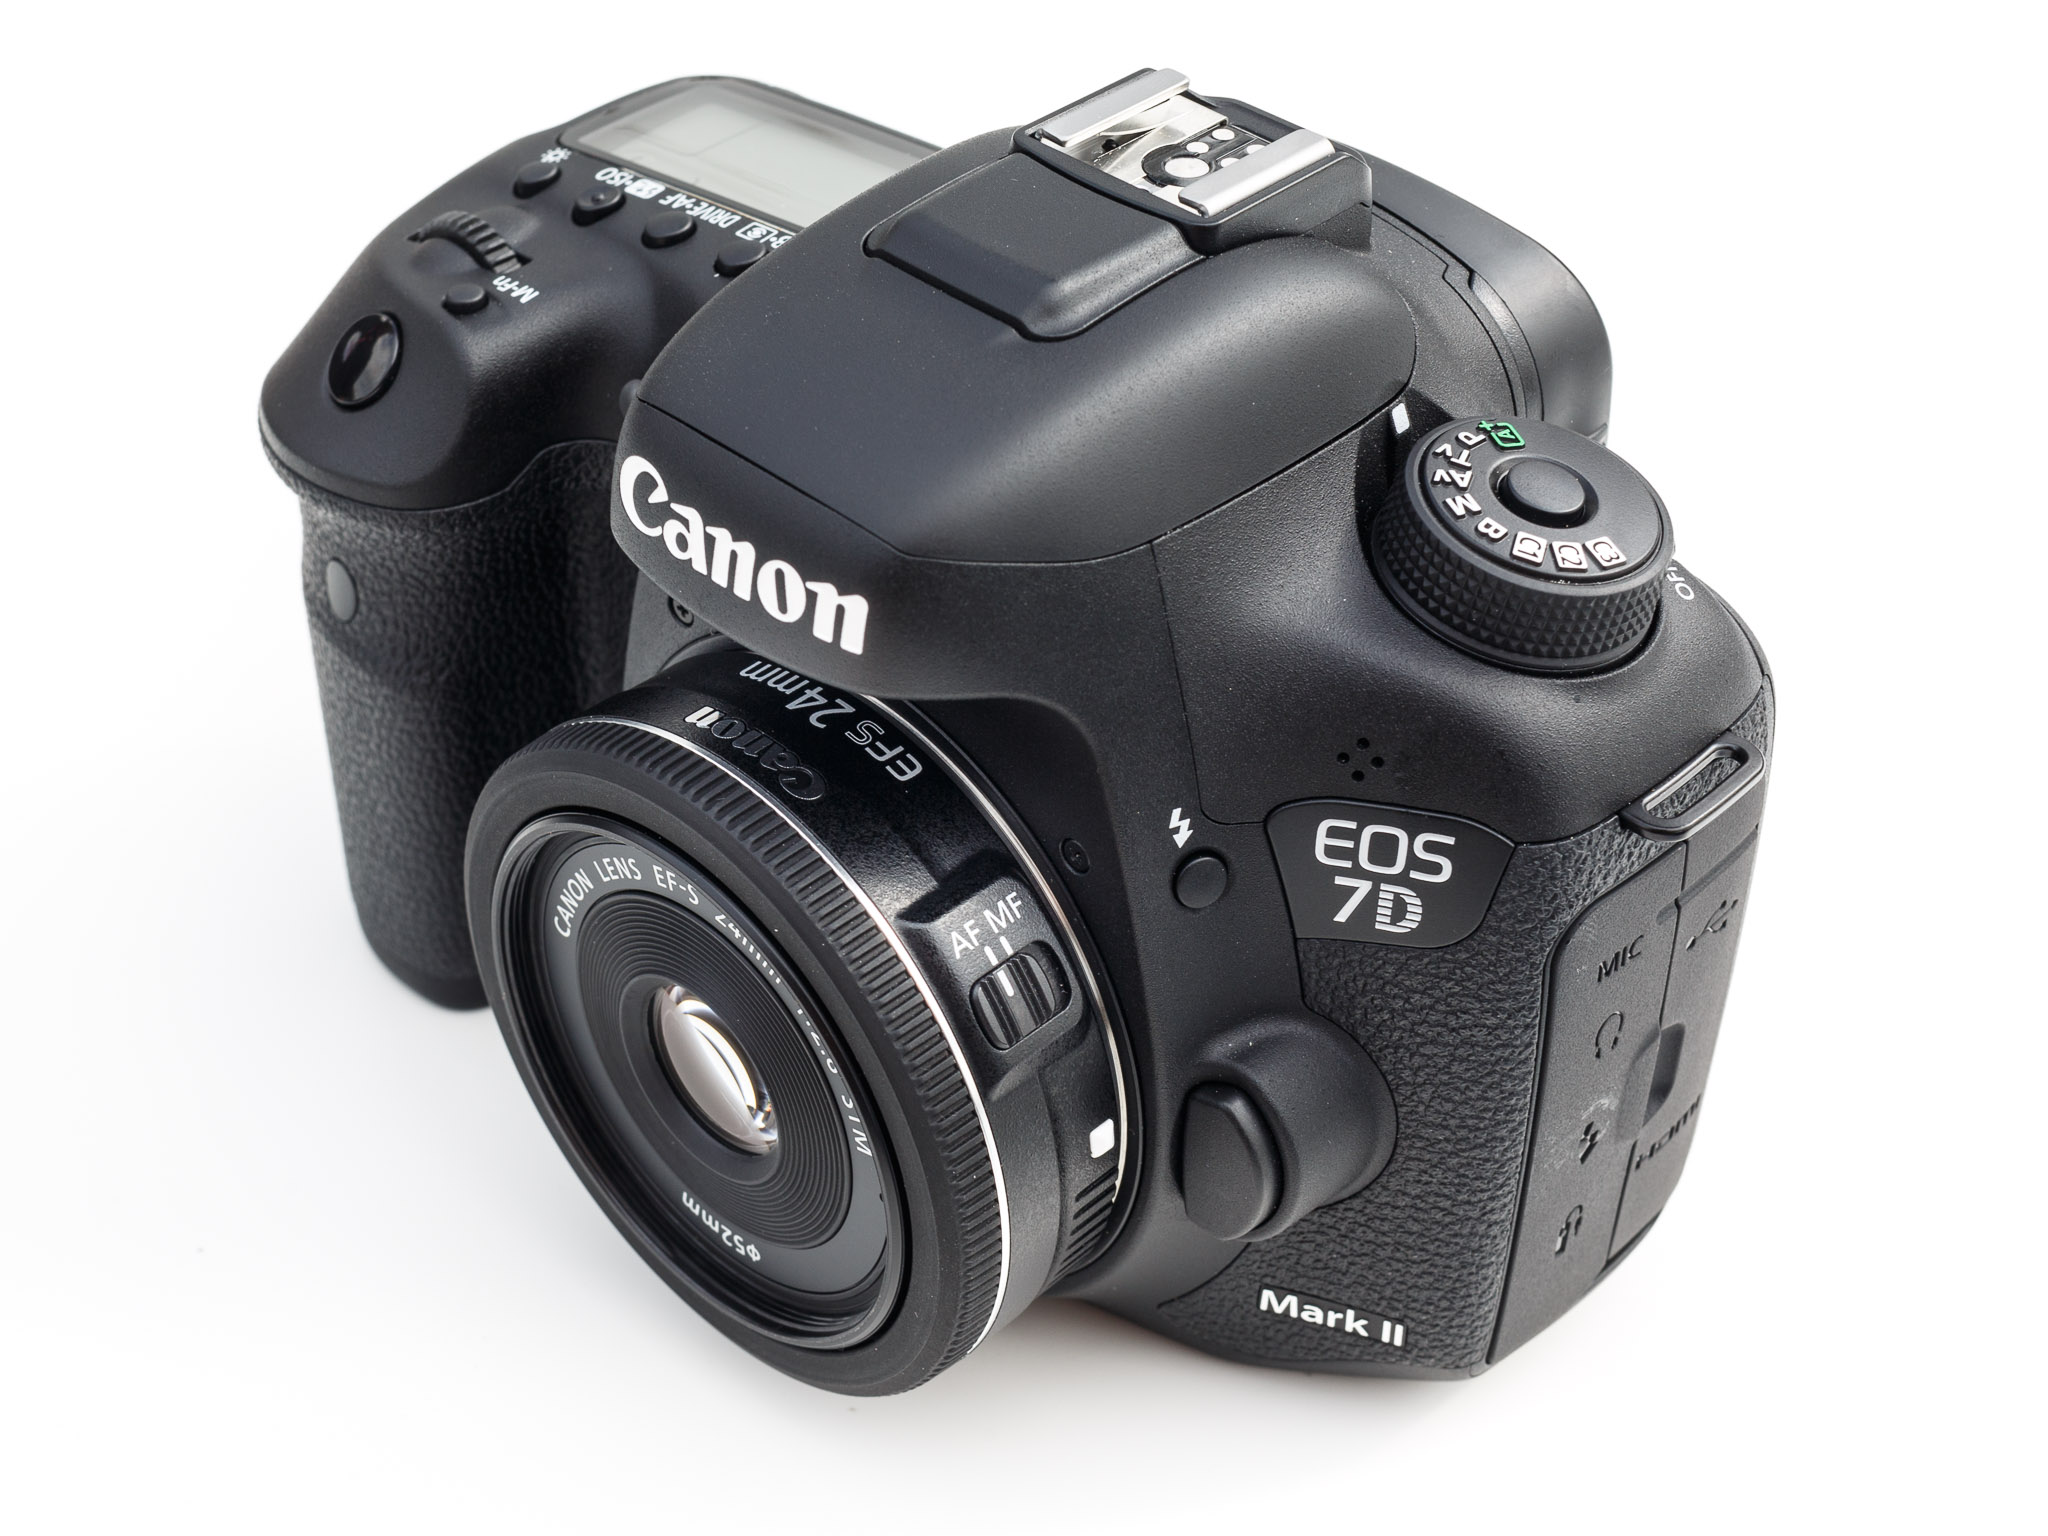 Canon's 7D Mark II debuted at Photokina along with this compact 28mm f2.8 pancake lens.